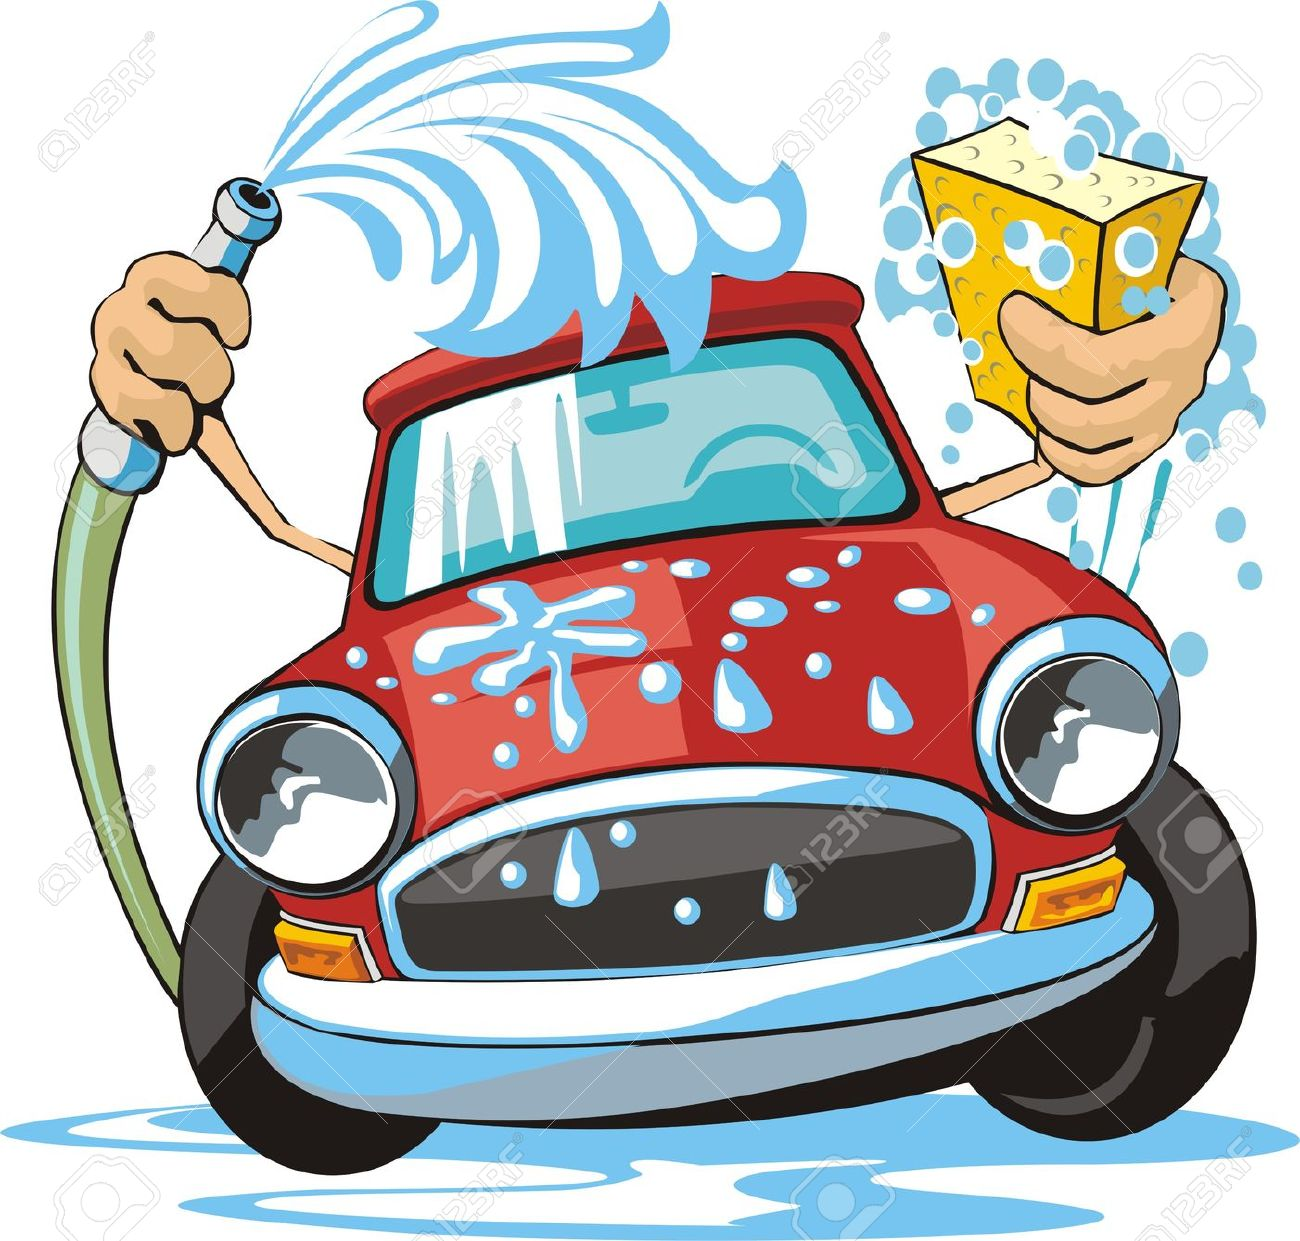 Car in automatic car wash clipart clipart transparent stock Car Wash Clipart & Car Wash Clip Art Images - ClipartALL.com clipart transparent stock